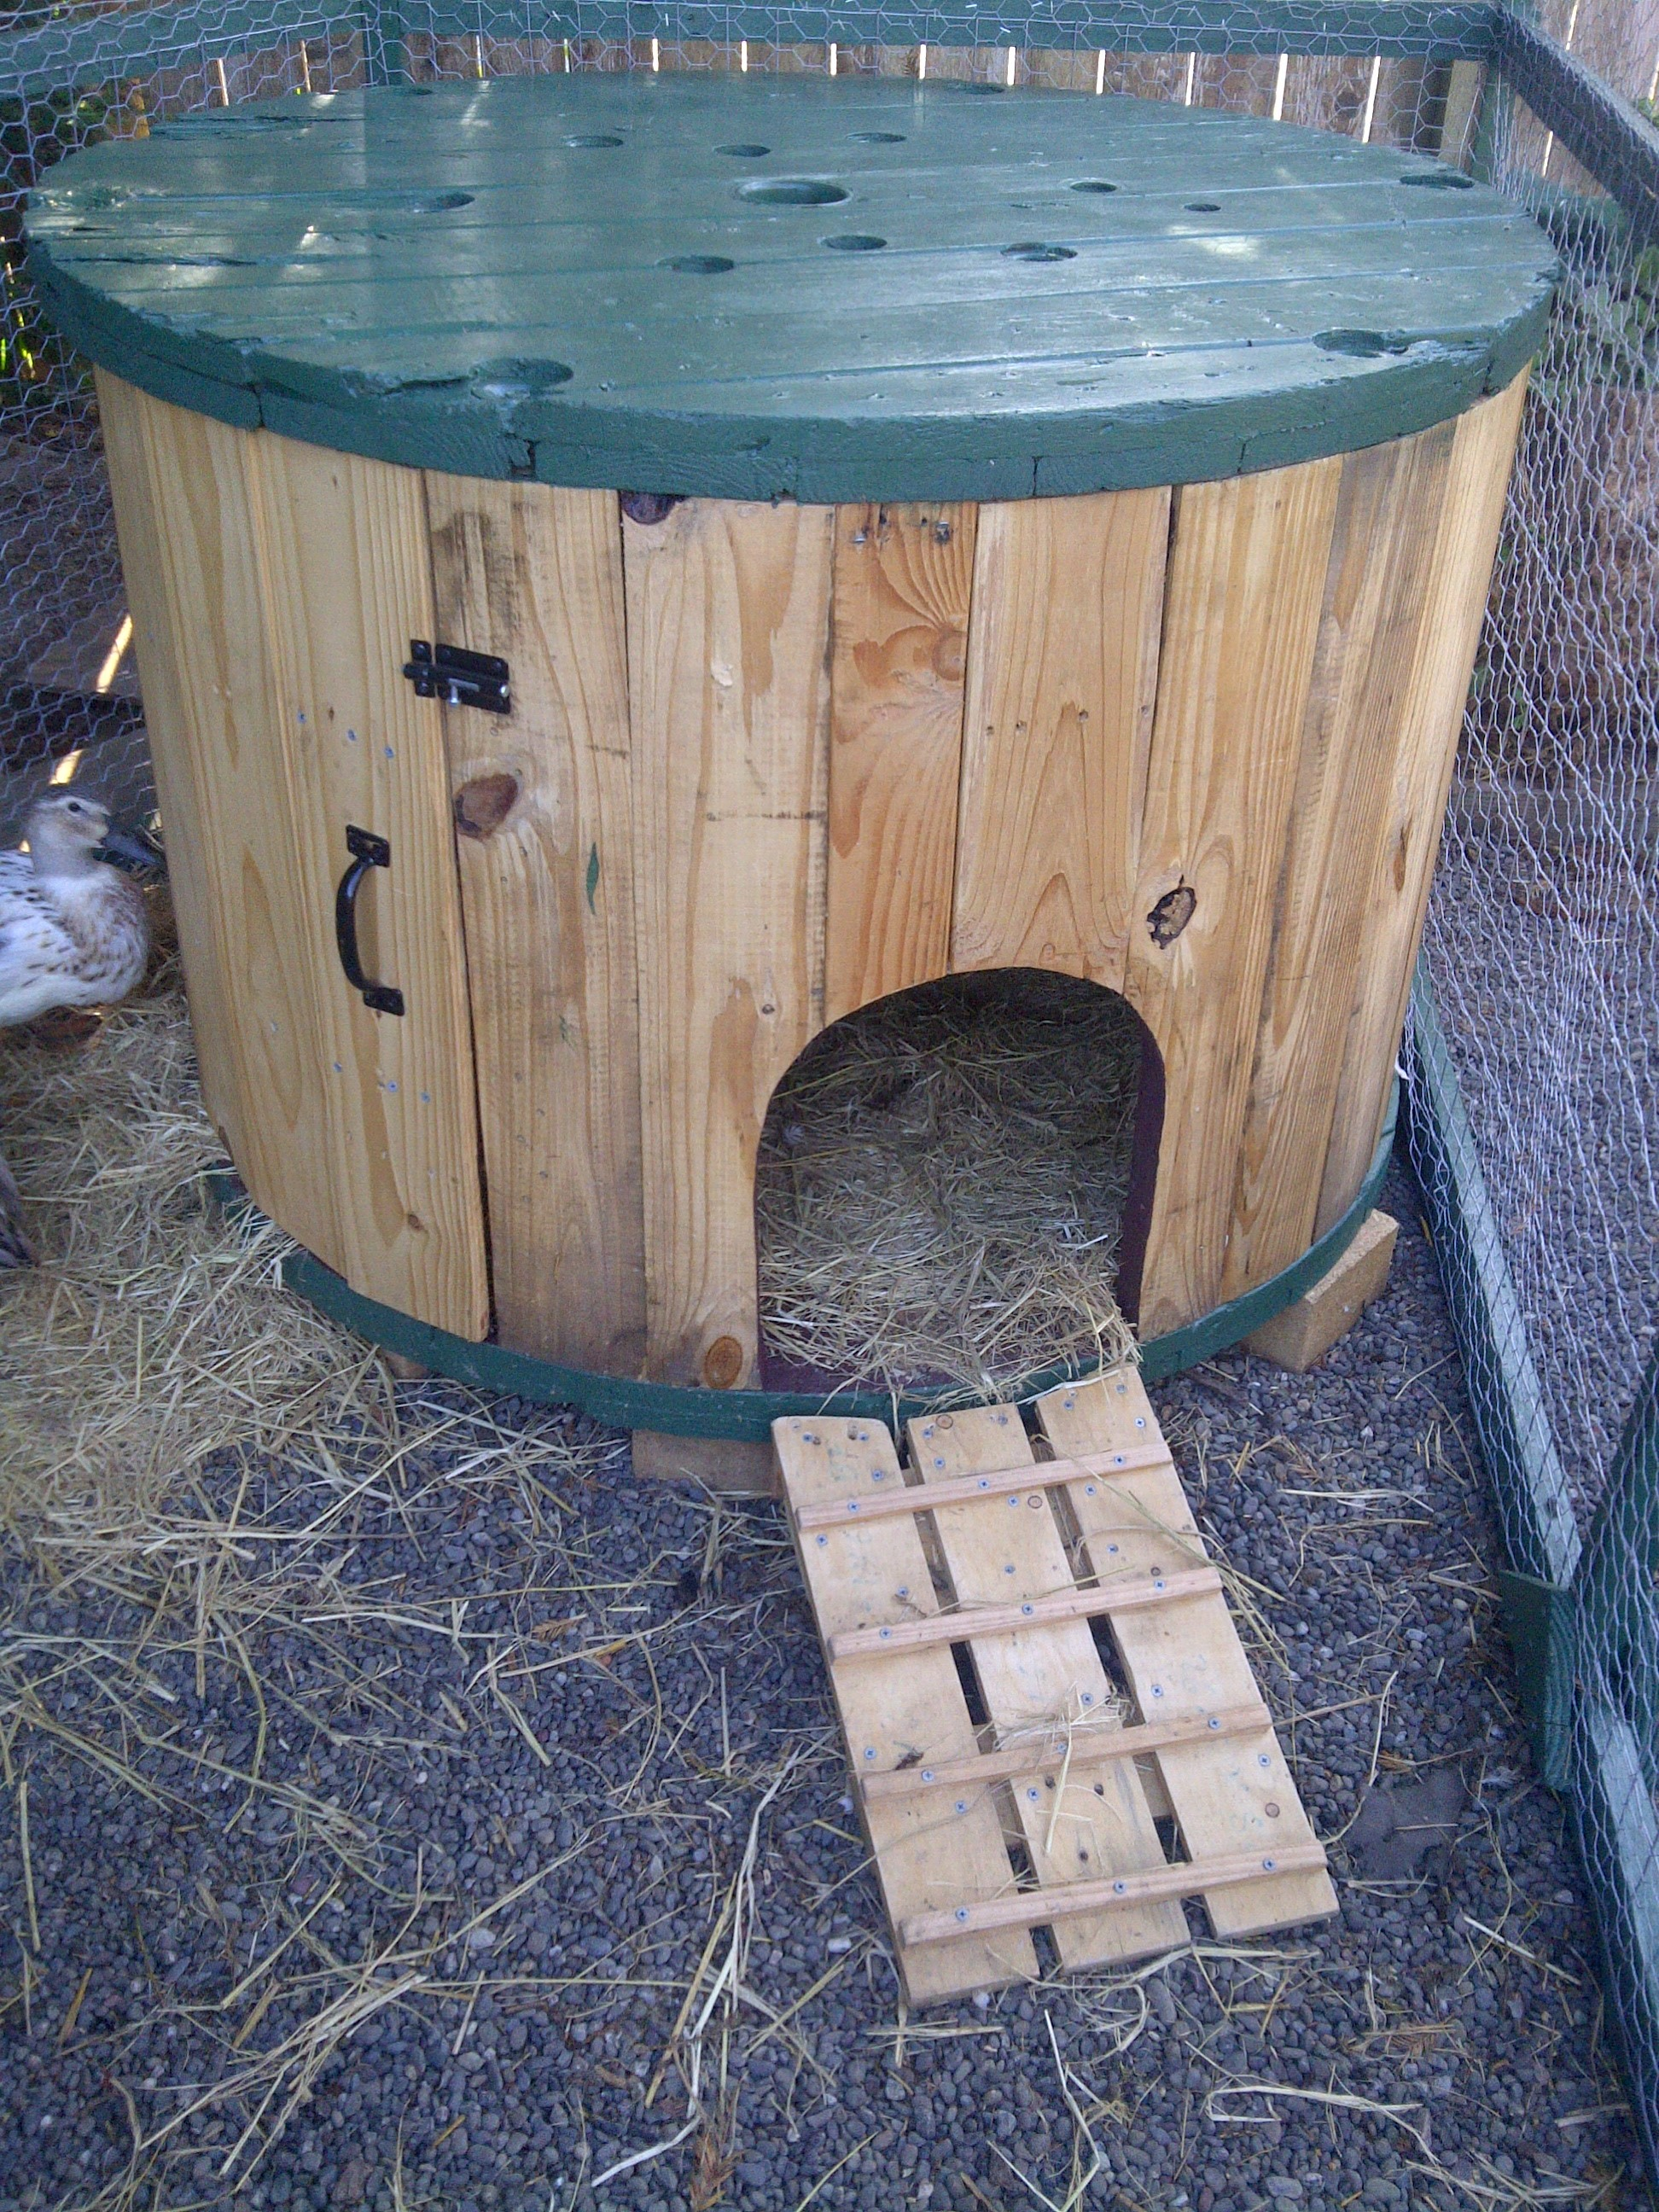 Cable Spool Duck House